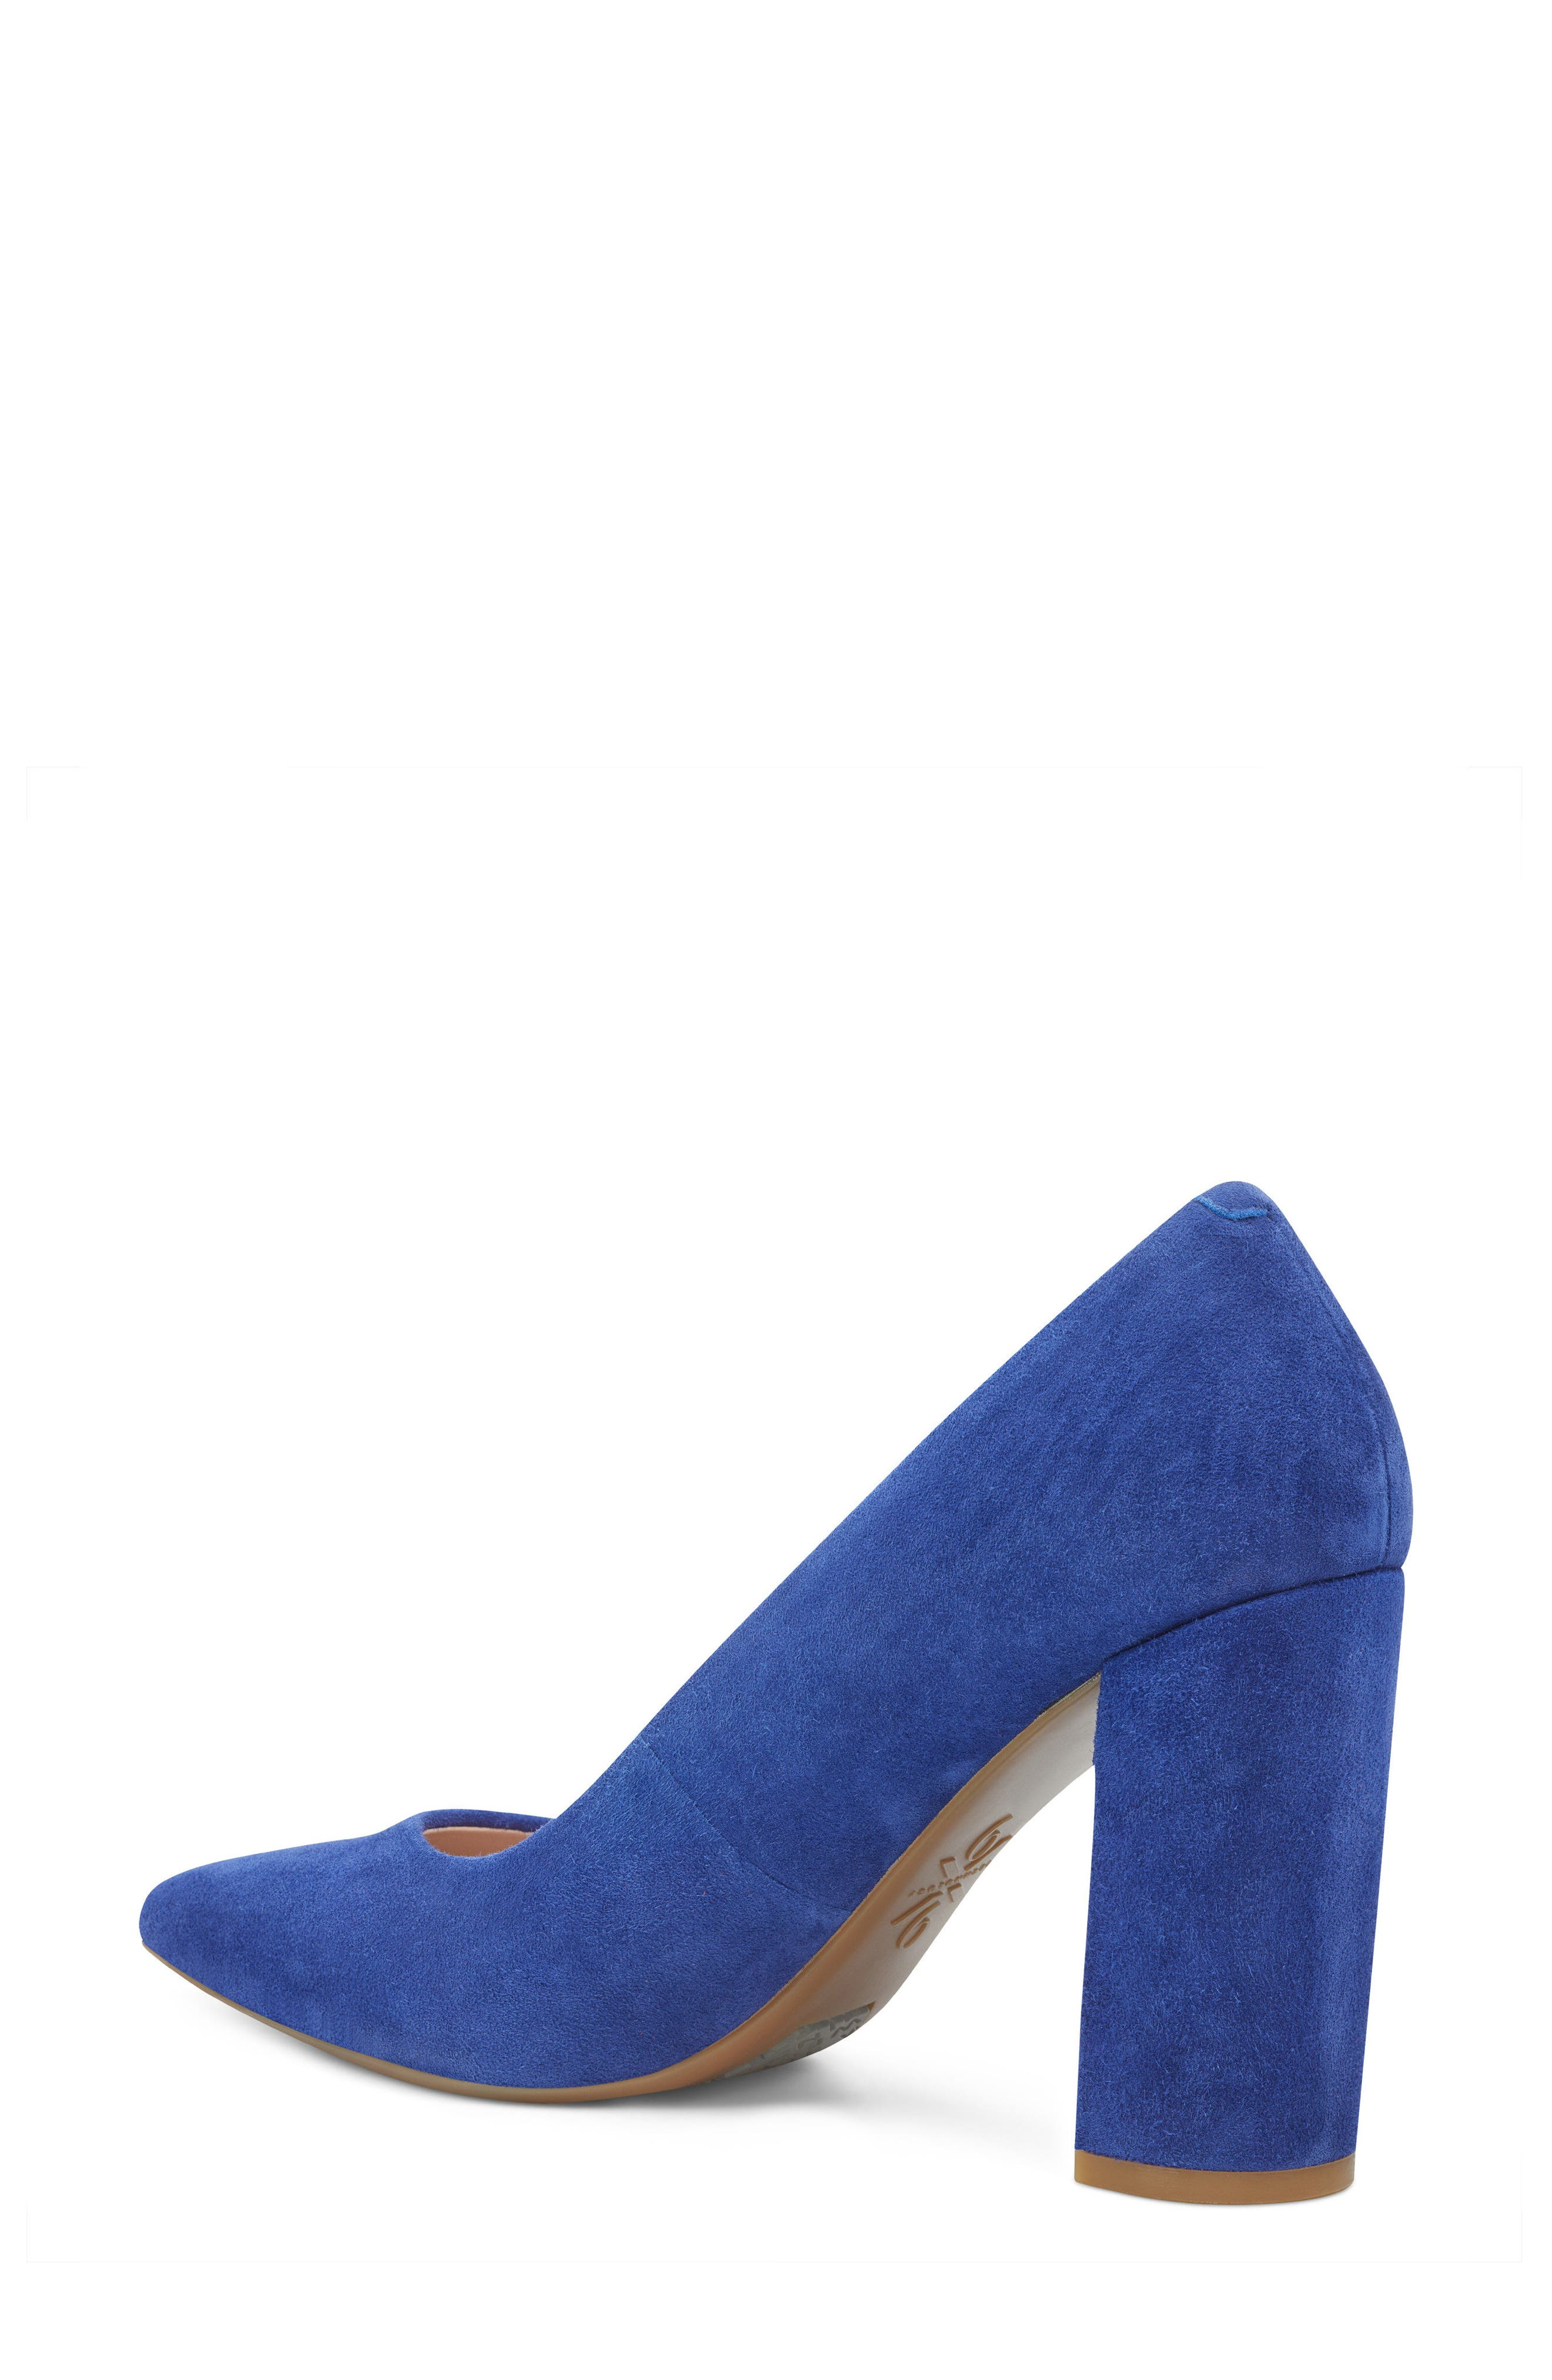 Astoria Pump,                             Alternate thumbnail 2, color,                             DARK BLUE SUEDE